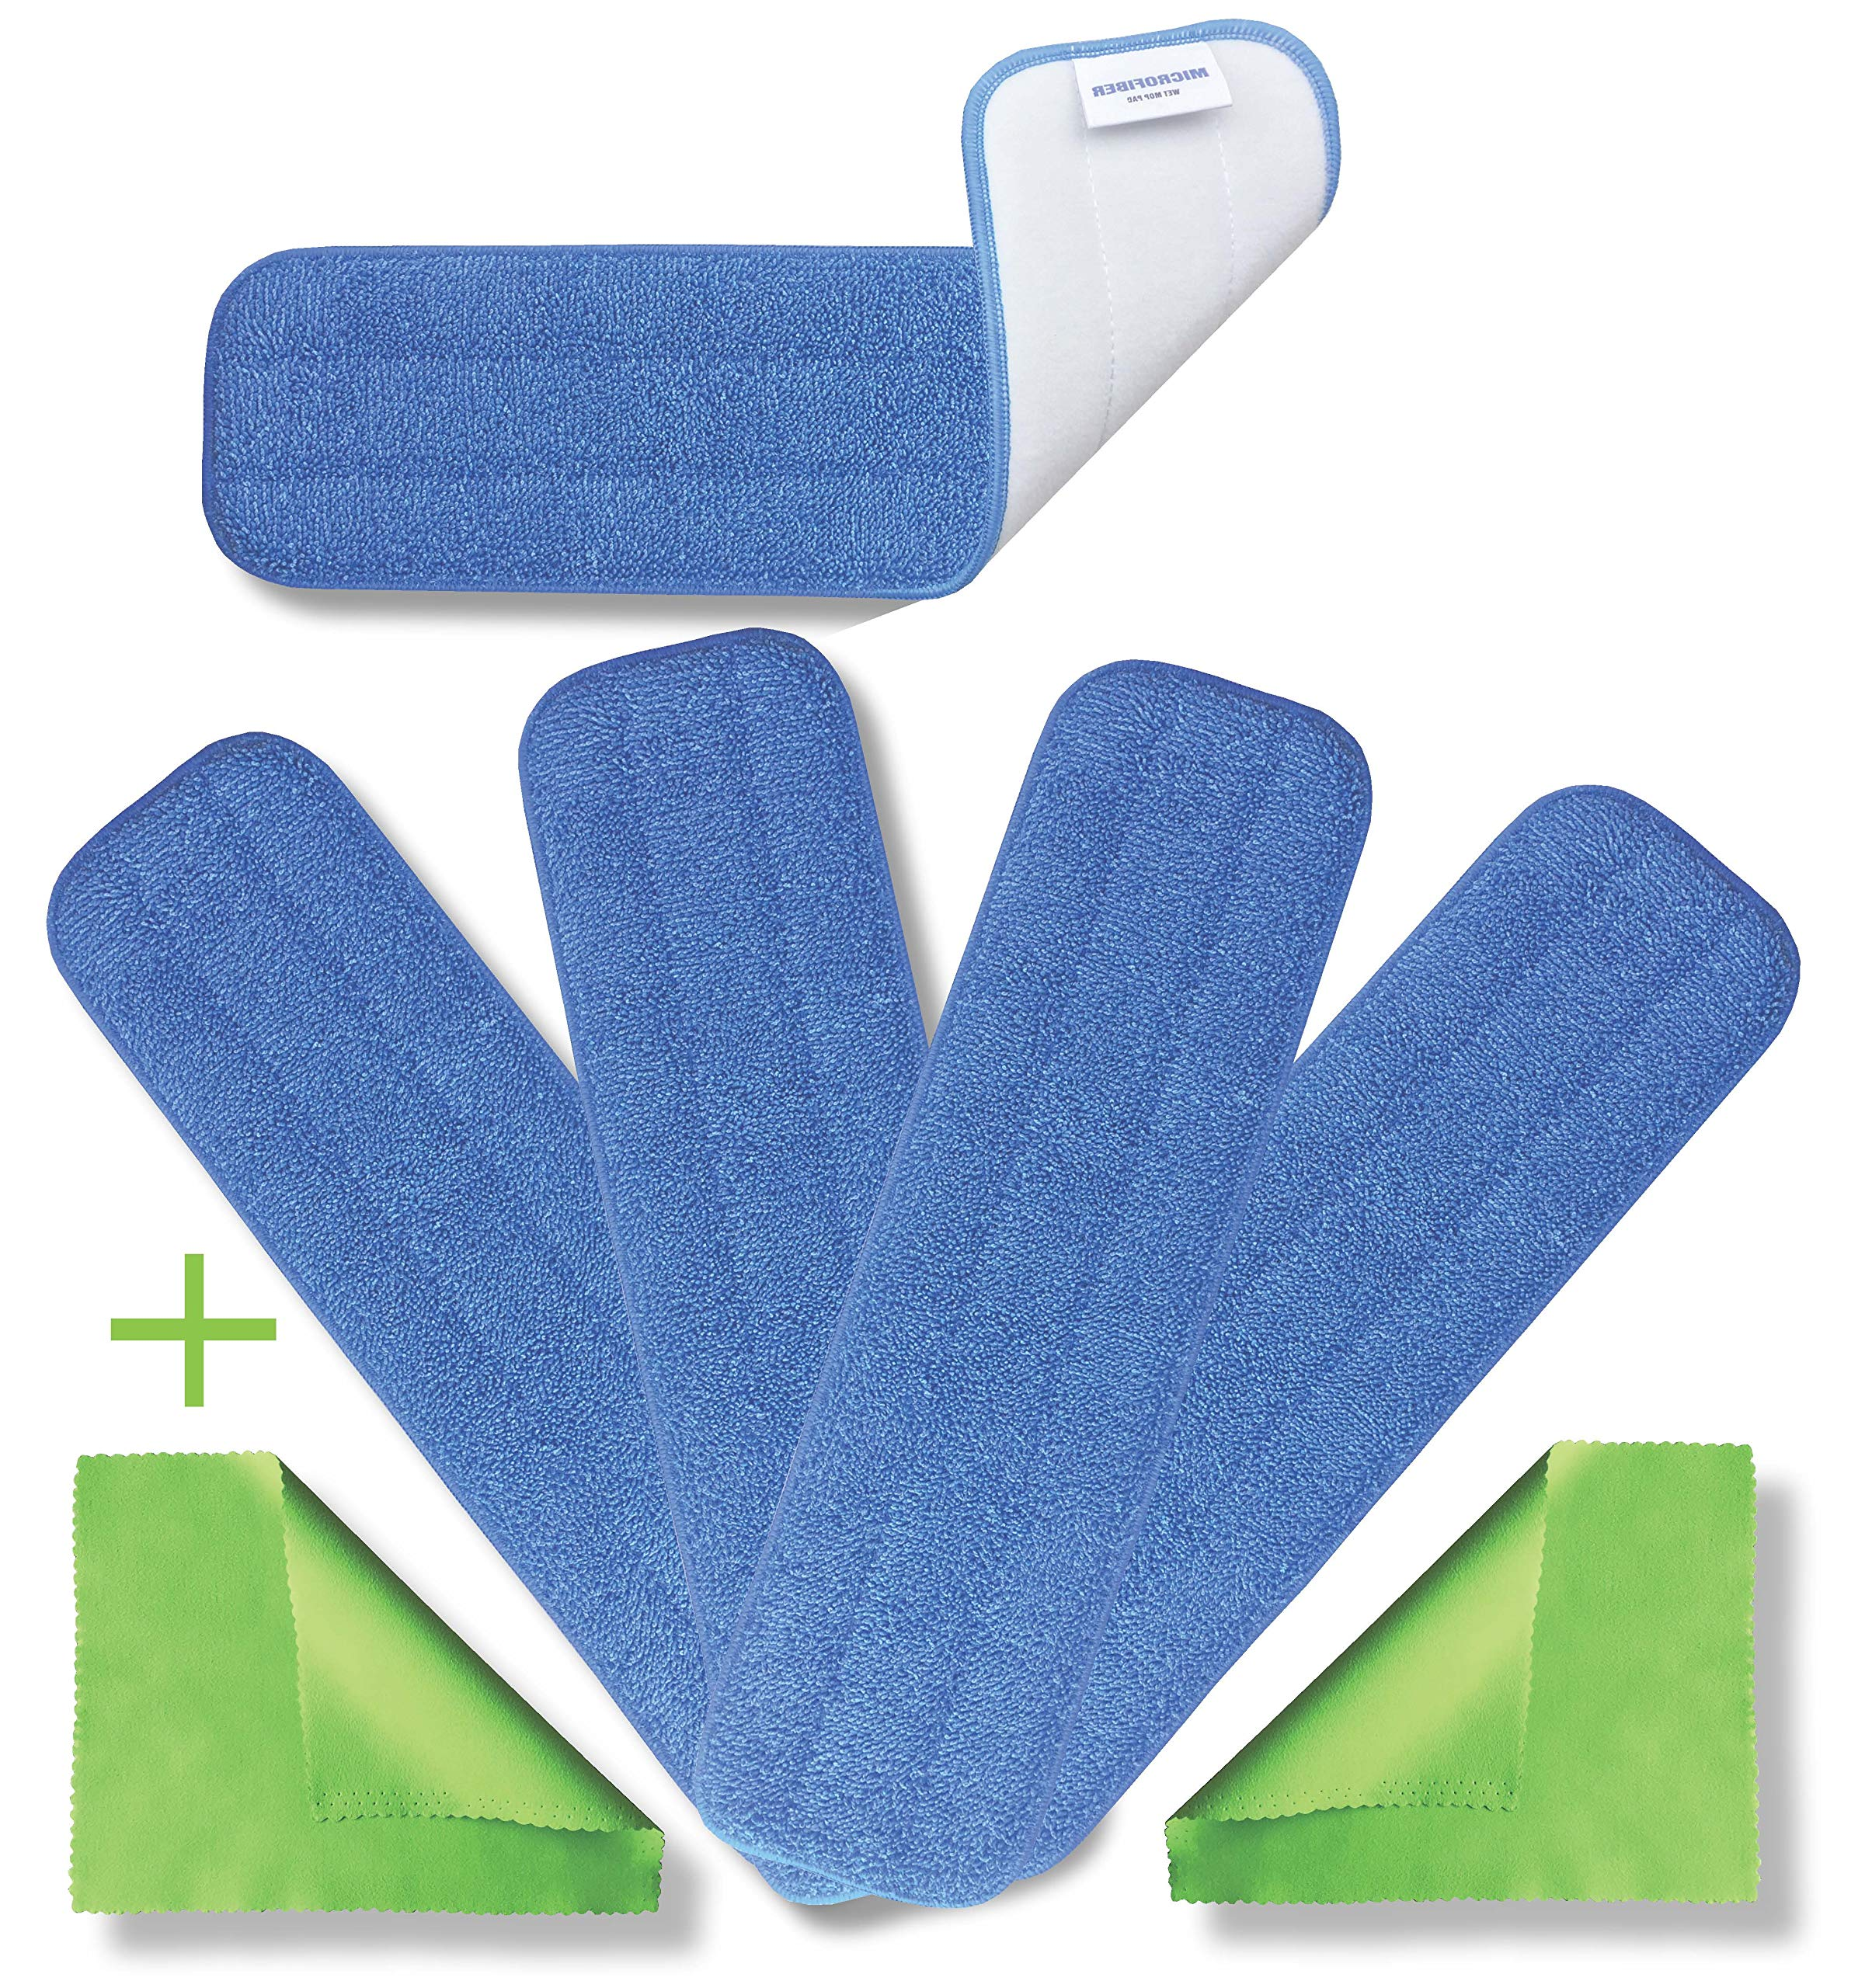 """Microfiber Pros Reusable 18"""" Mop Pads – 5-Pack with 2 Bonus Cloths - Commercial Grade 450 GSM Flat Replacement Heads for Wet Or Dry Floor Cleaning and Scrubbing by Microfiber Pros (Image #1)"""